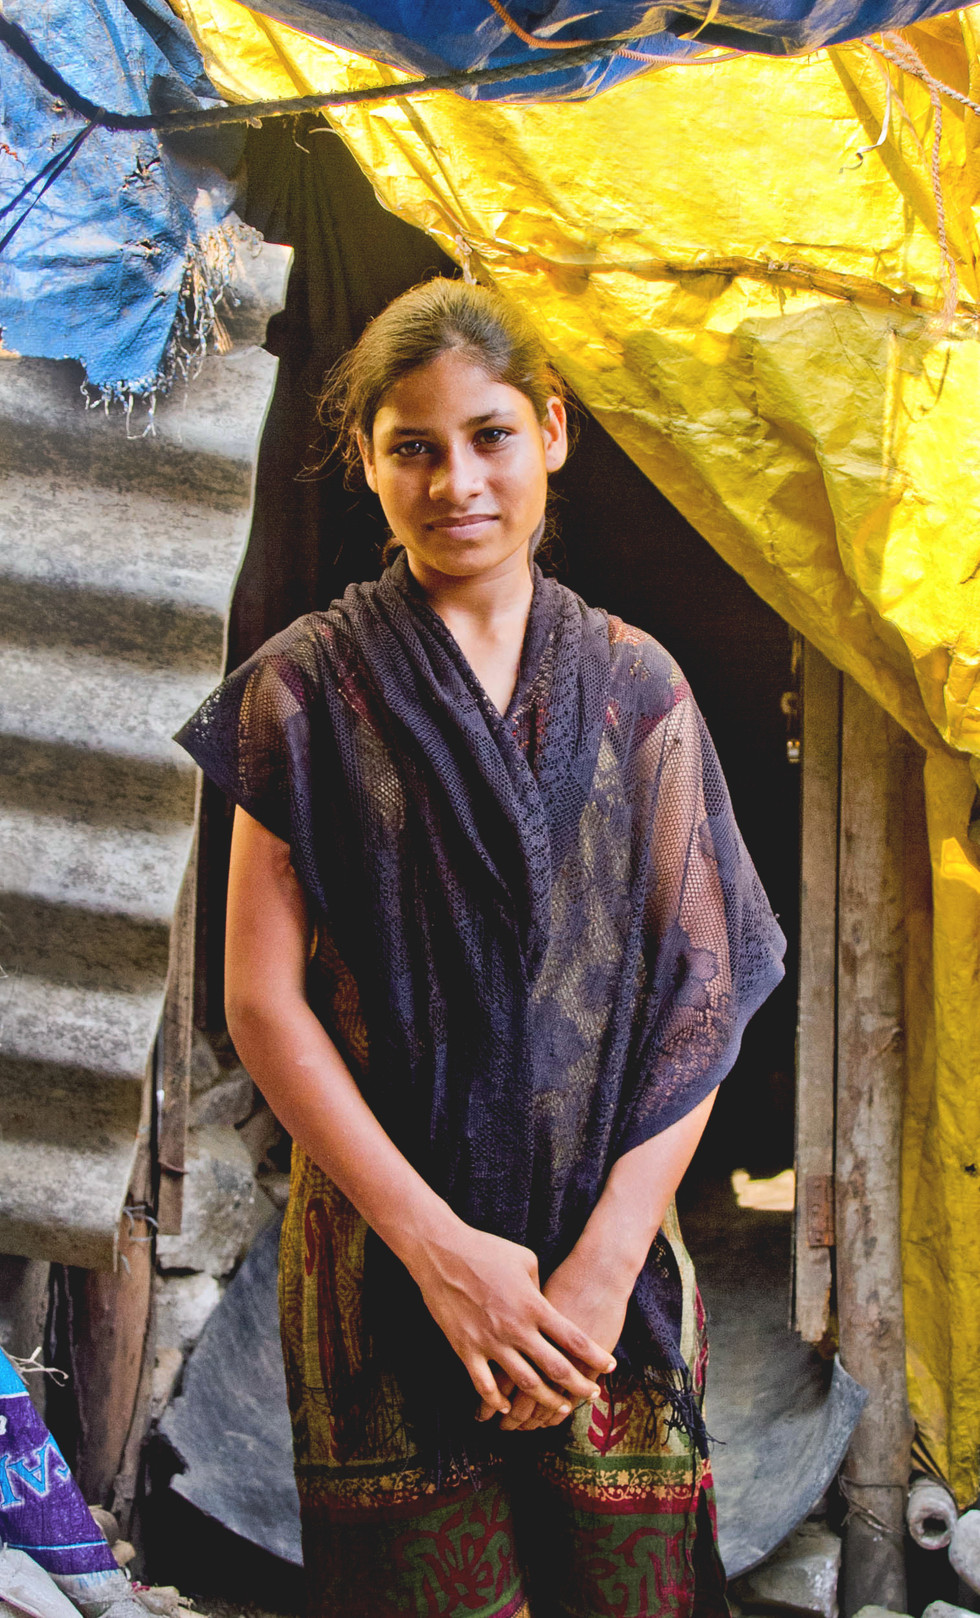 IMAGE I. MILLENNIAL GENERATION. A young teenage girl stands in front of her home, with dignity and grace. The Millennial generation of young people in the developing world, view the future with optimism and creativity. When speaking with the younger generation, its extremely clear how different they view the world and a brighter future for their community. I'm encouraged they will be the positive change, a new voice.